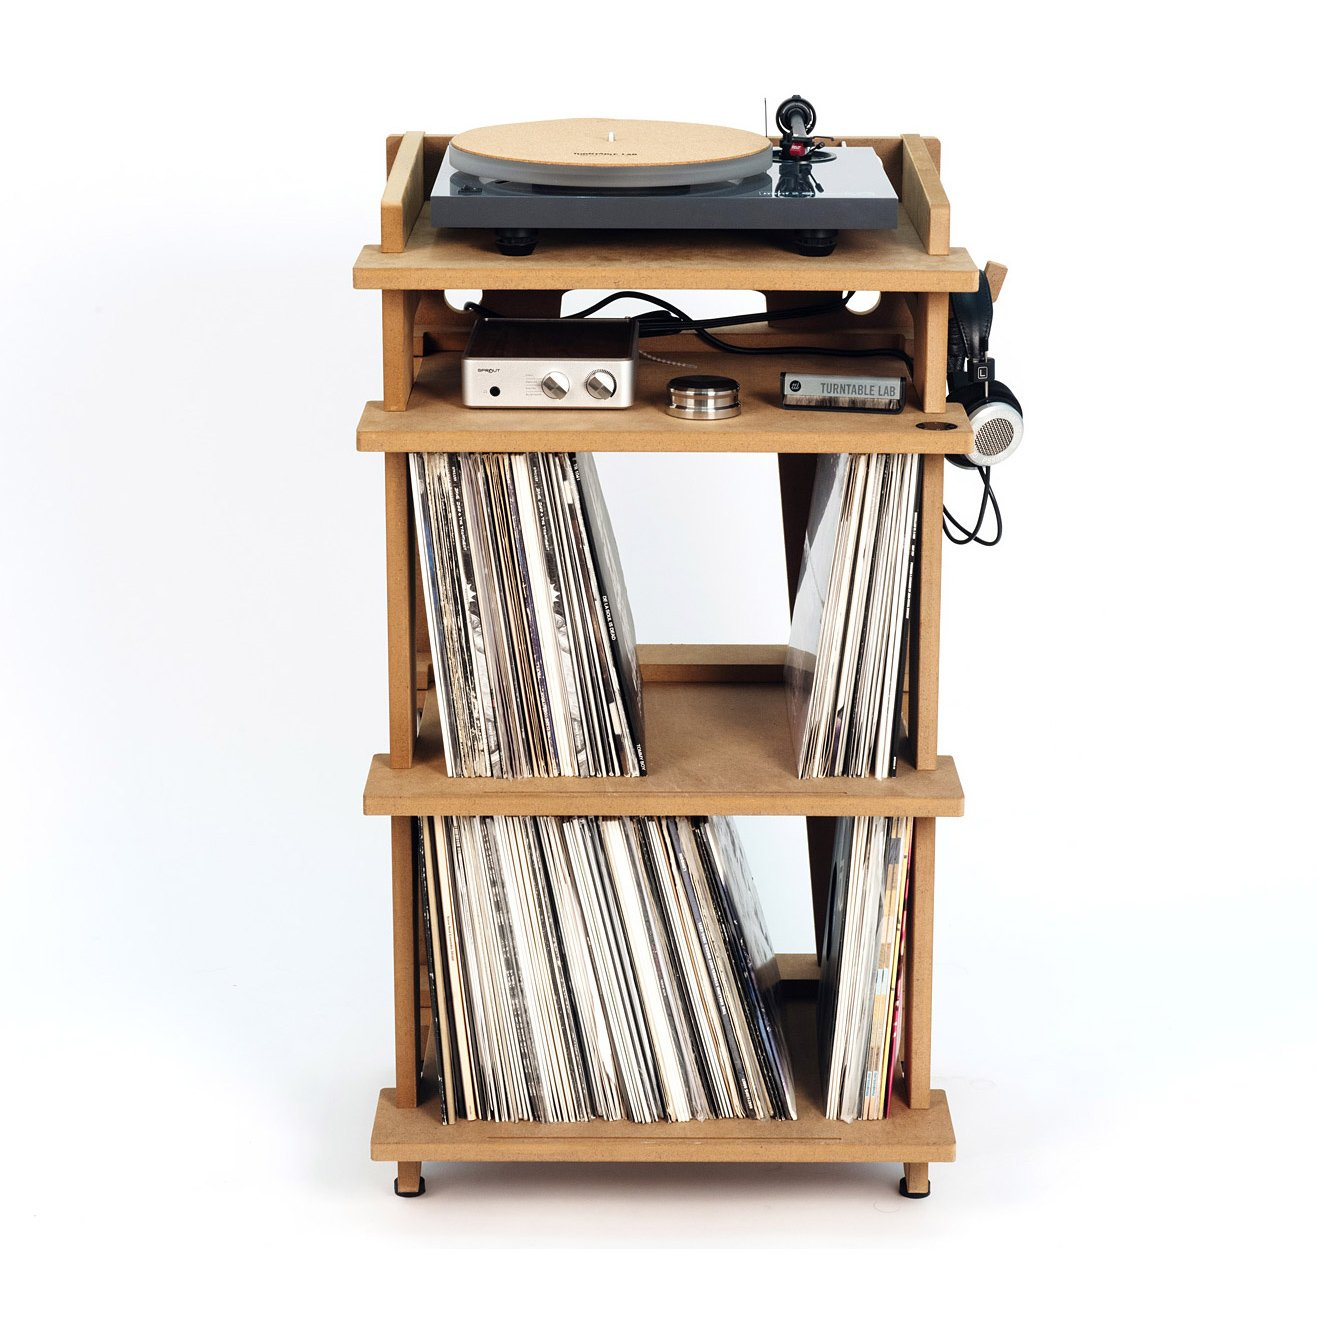 Line Phono Turntable Station Turntable Stand + Vinyl Record Storage, Made In The USA - Natural Colorway